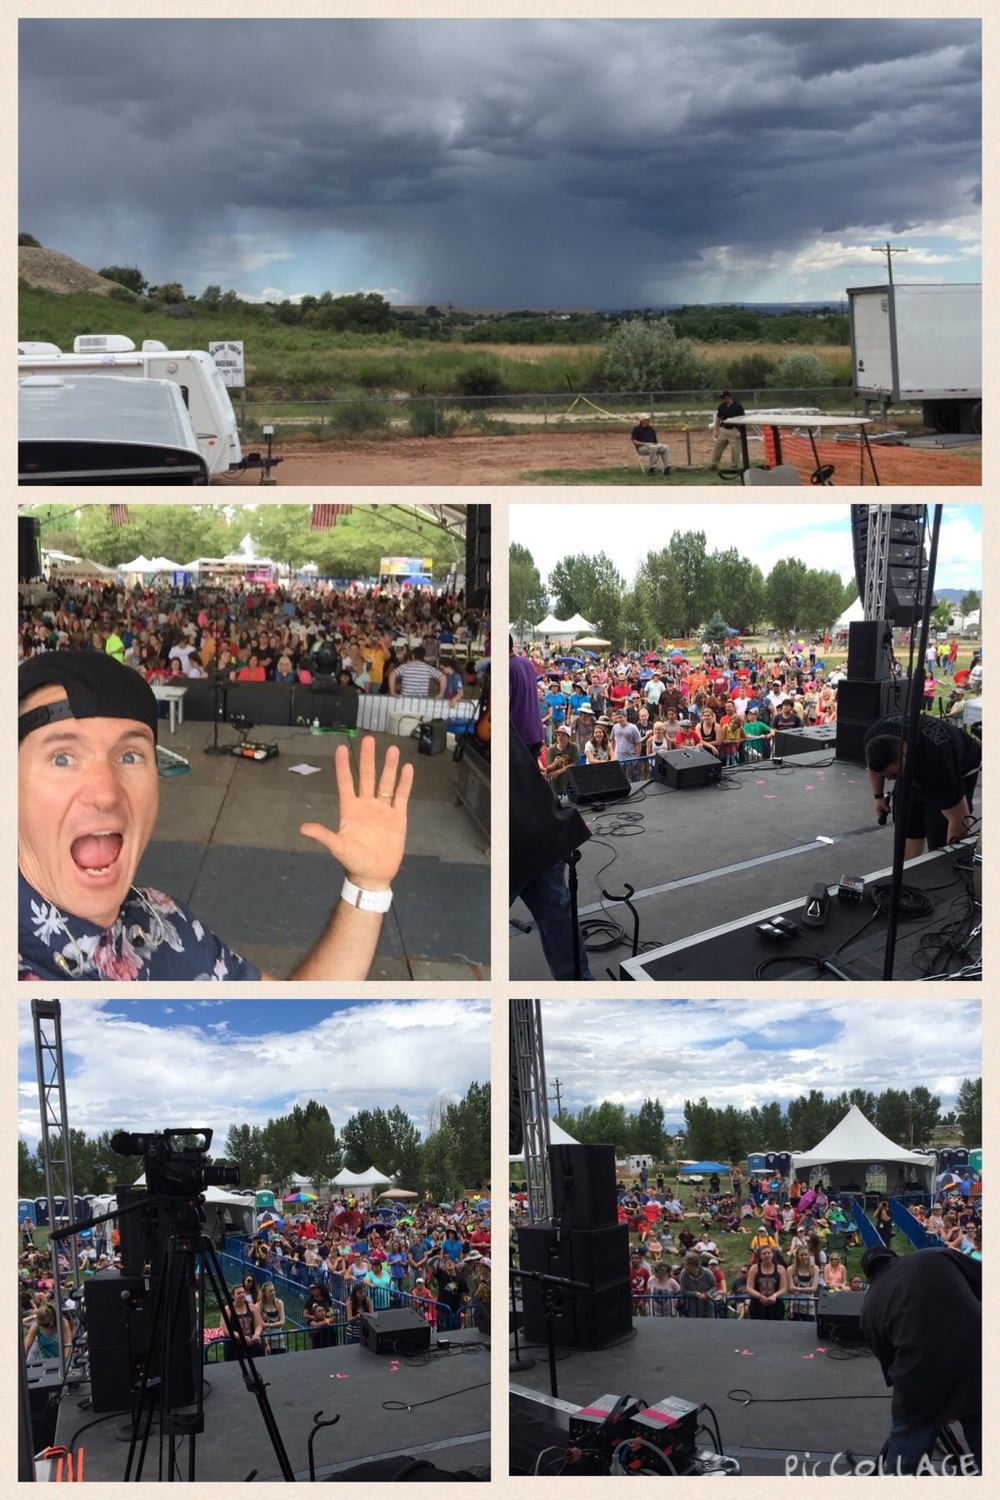 Nightvision festival crowd pics/Colorado weather